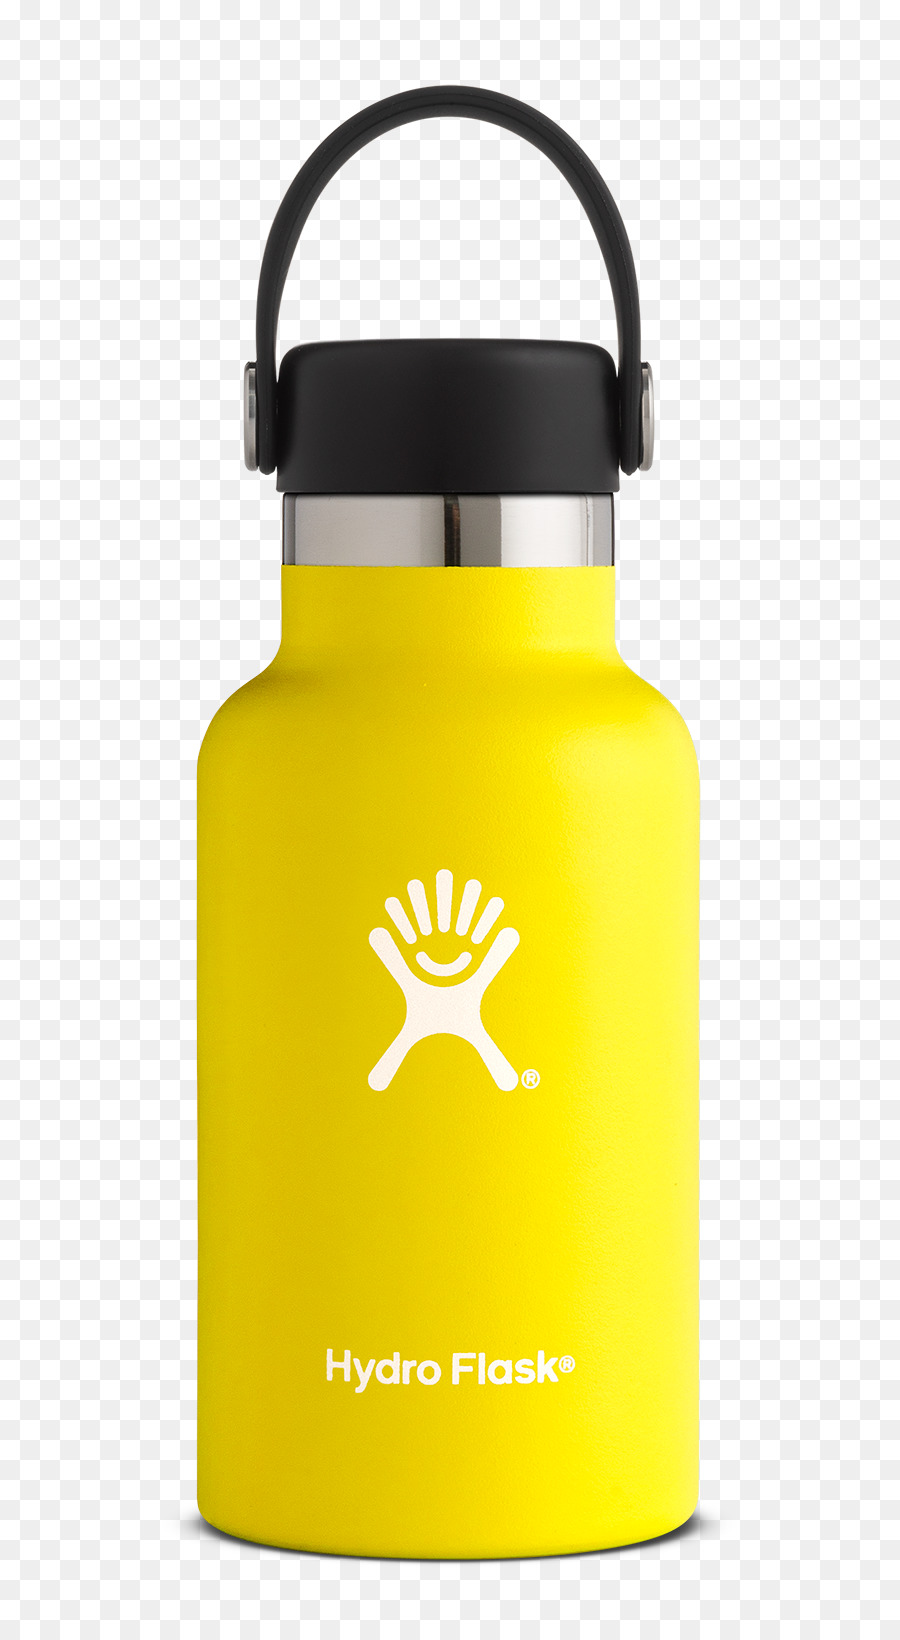 Hydro Flask Background png download.